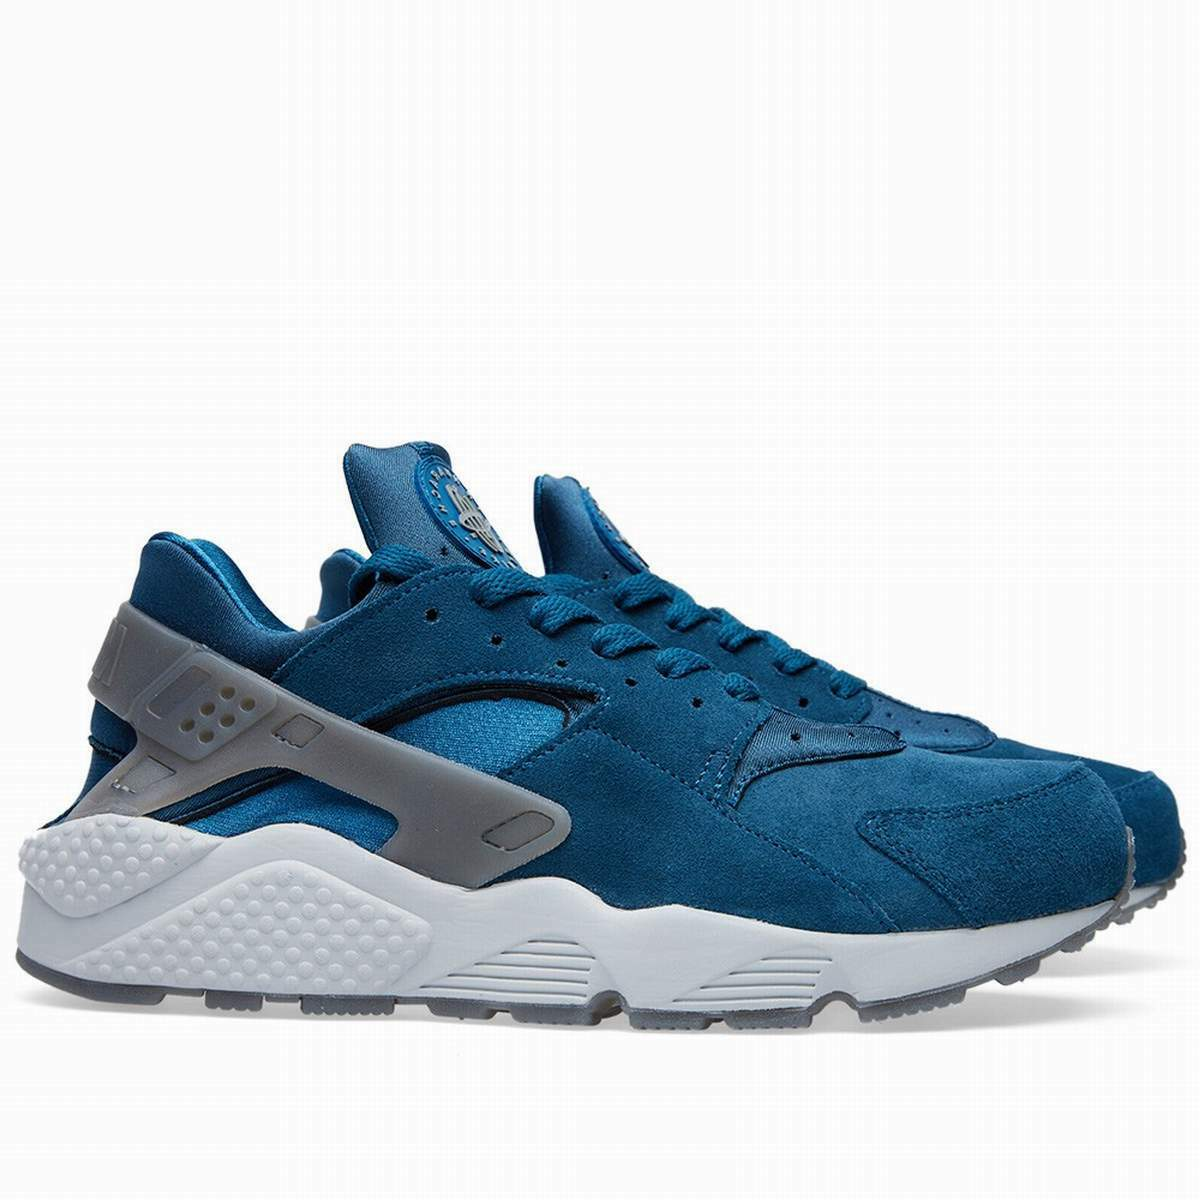 2018 Exclusive Nike Air Huarache Bleu Obliger & Cool Tailles  Gris  All Tailles Cool 0cbfbb